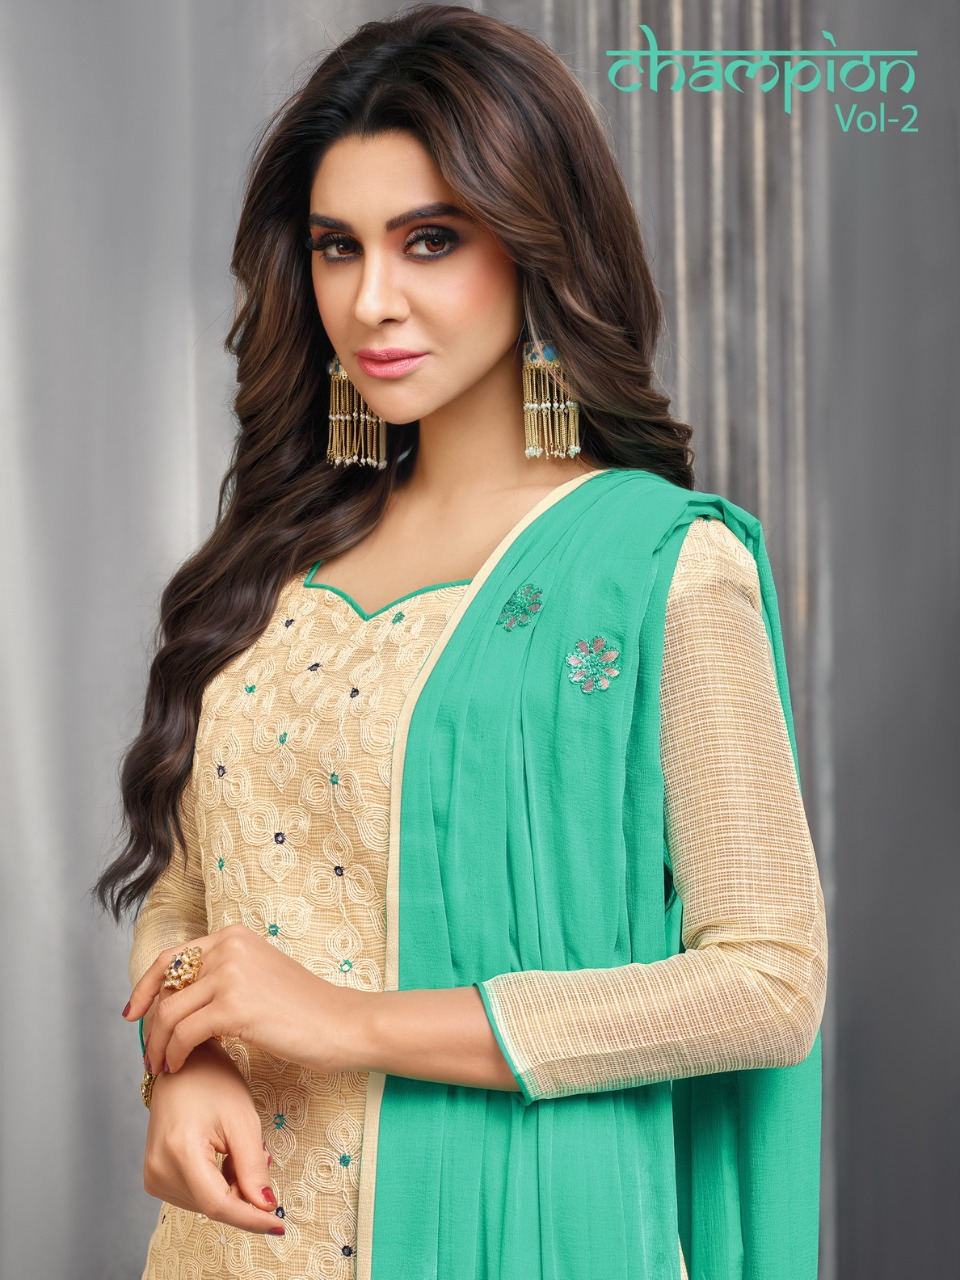 Kapil trendz presenting champion vol 2 casual daily wear salwar kameez collection